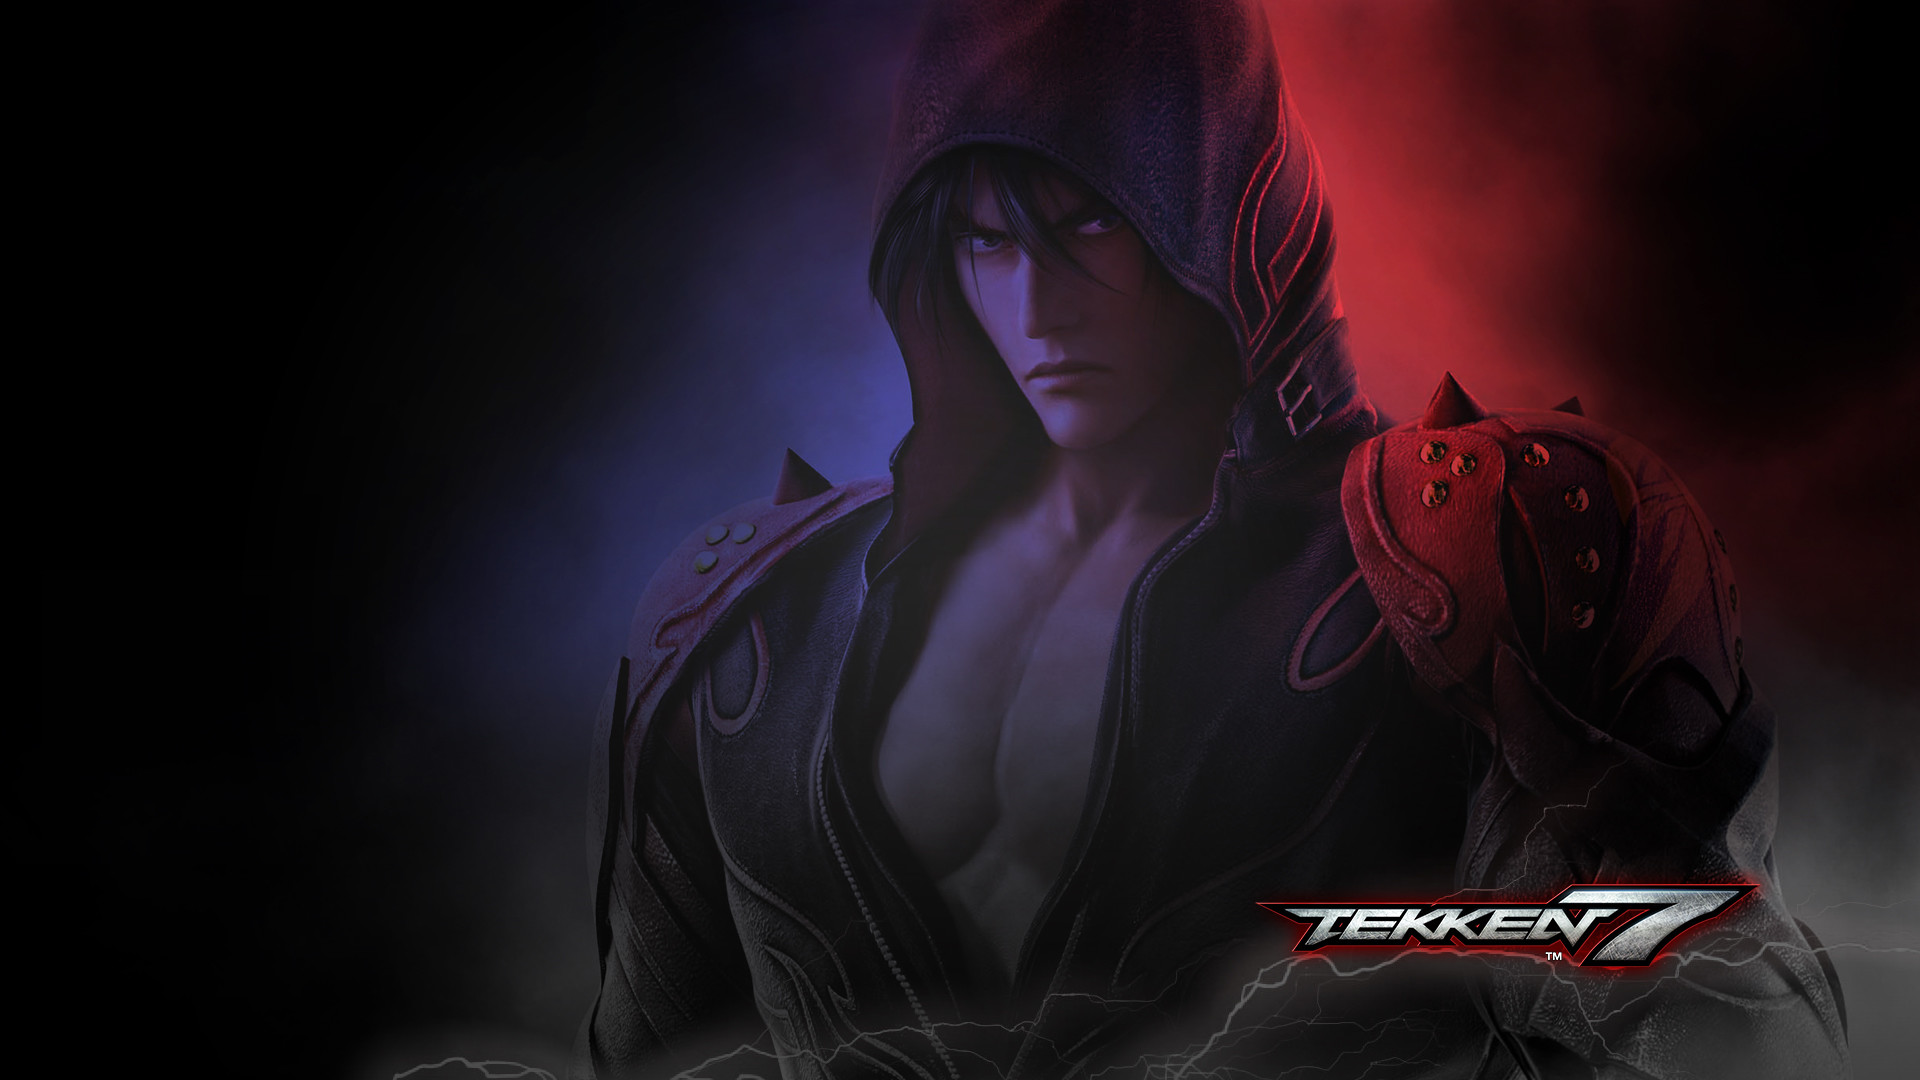 tekken 7 wallpapers 73 images